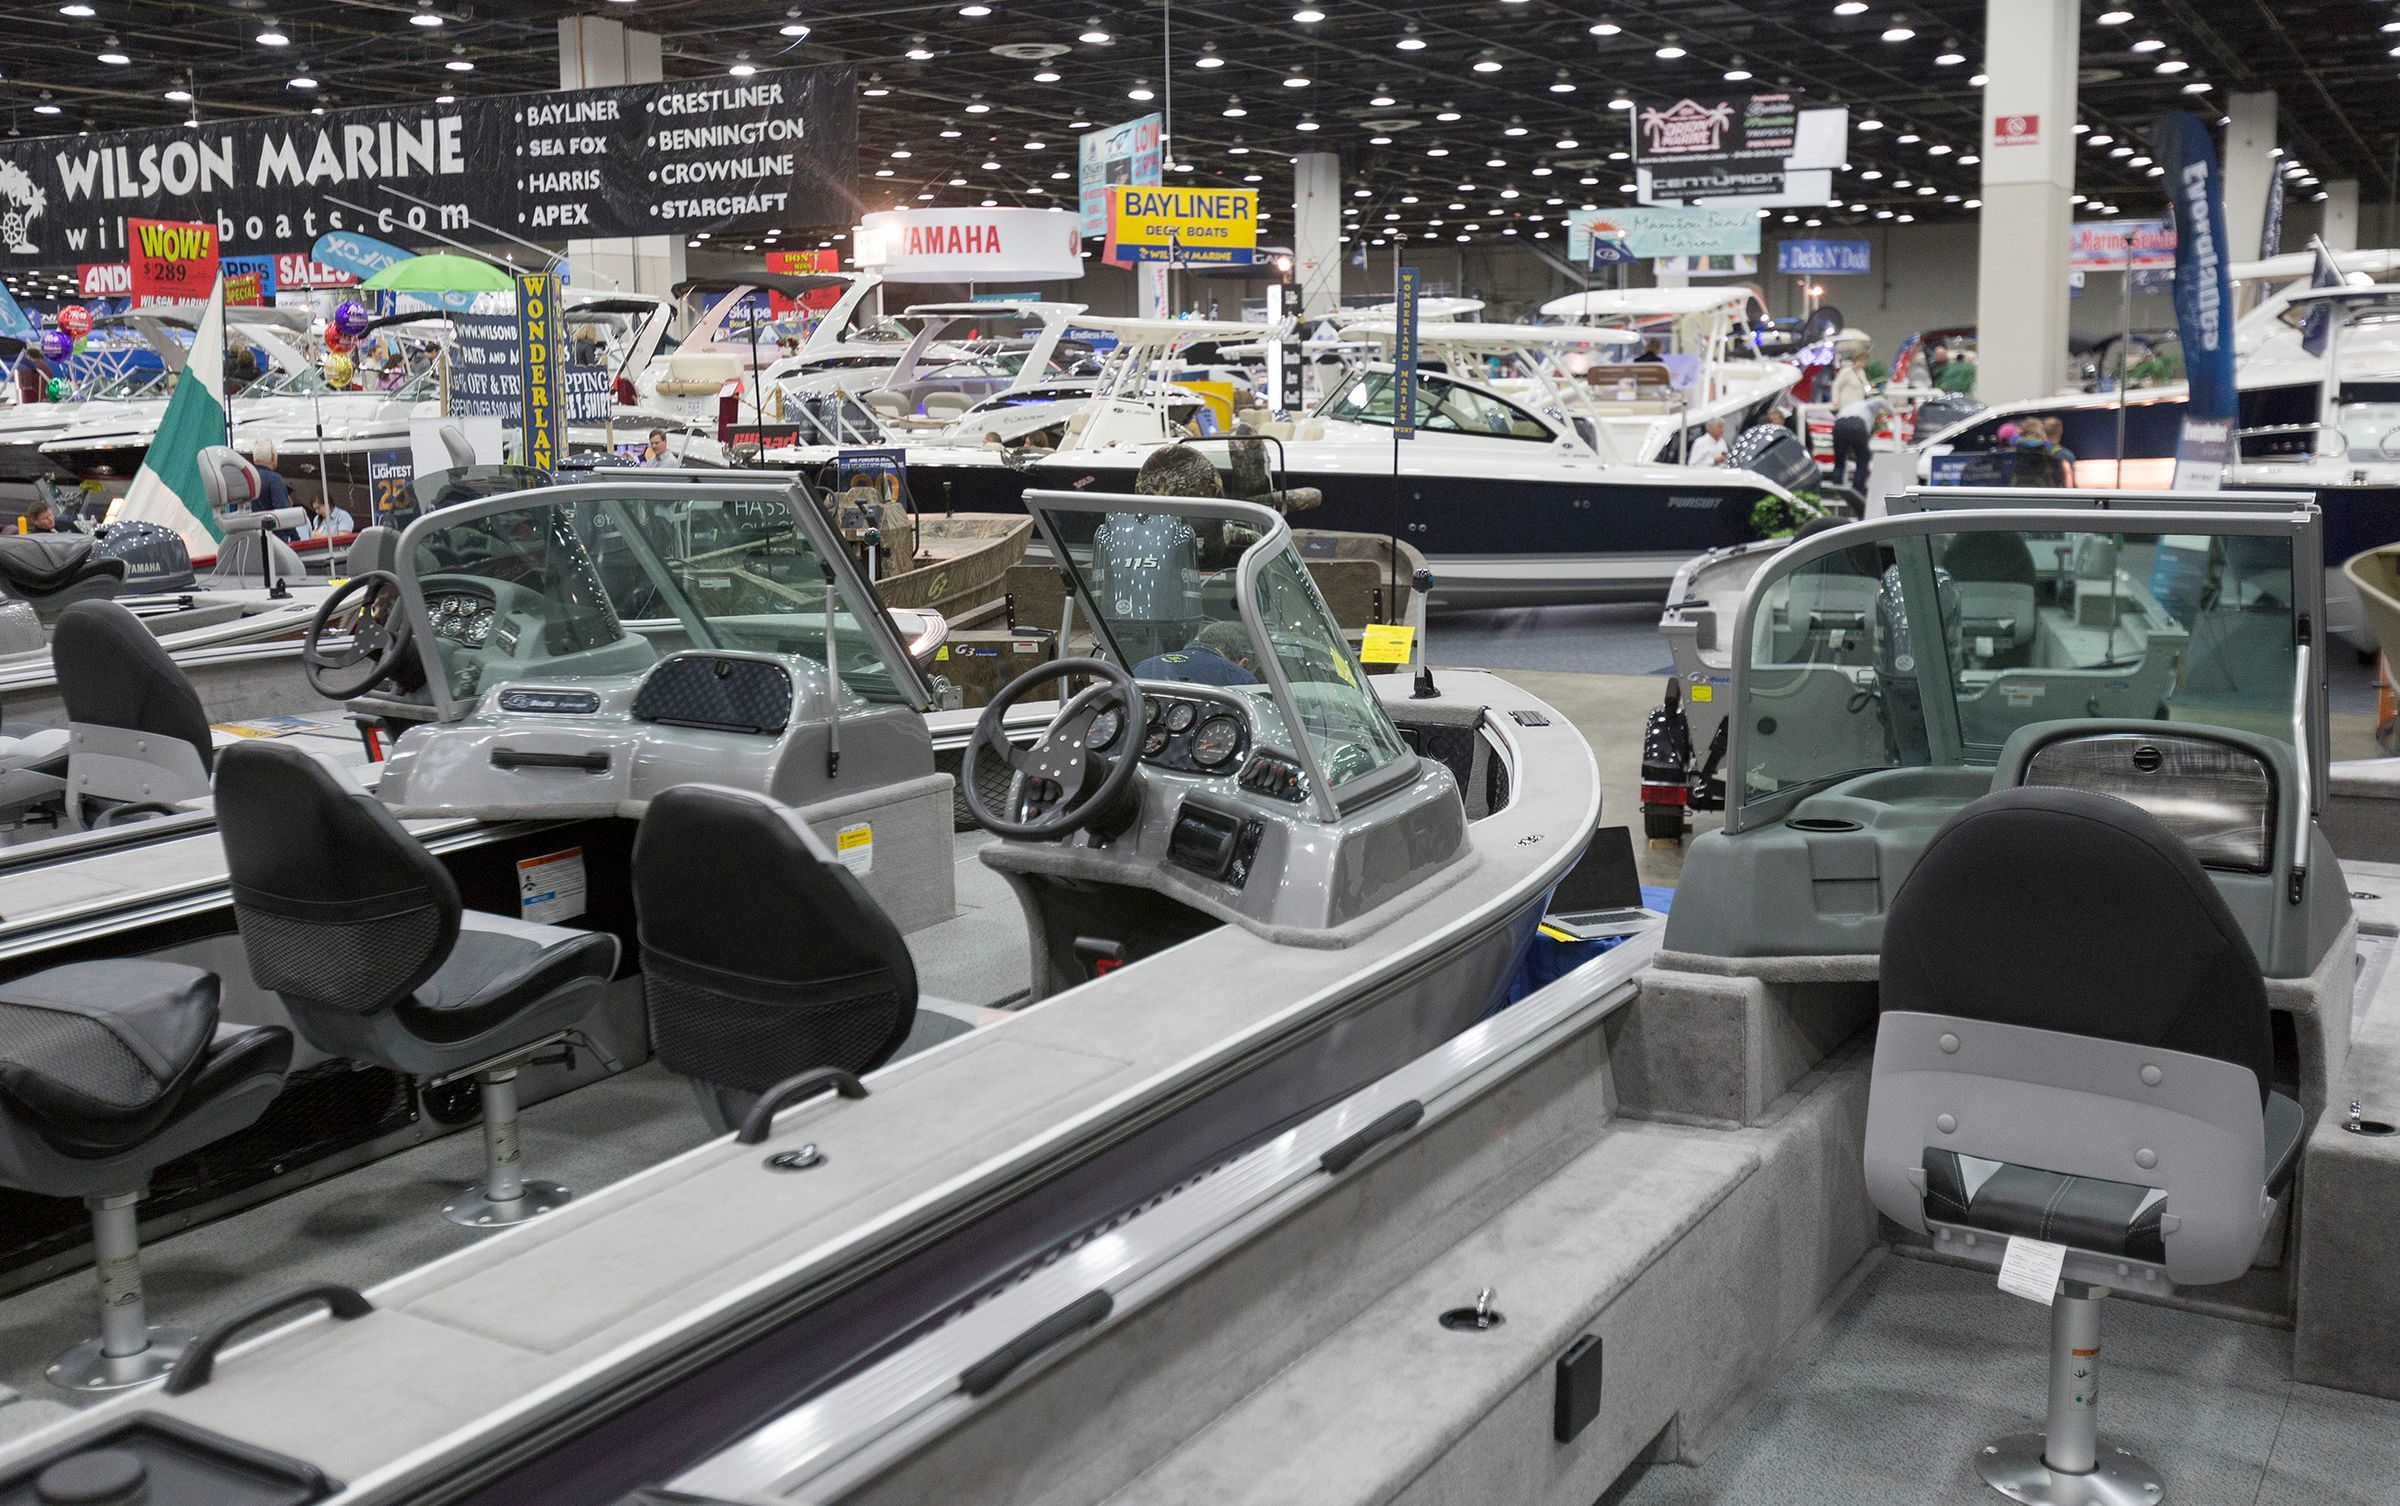 The 61st edition of the Detroit Boat Show opens Saturday at Cobo Center.